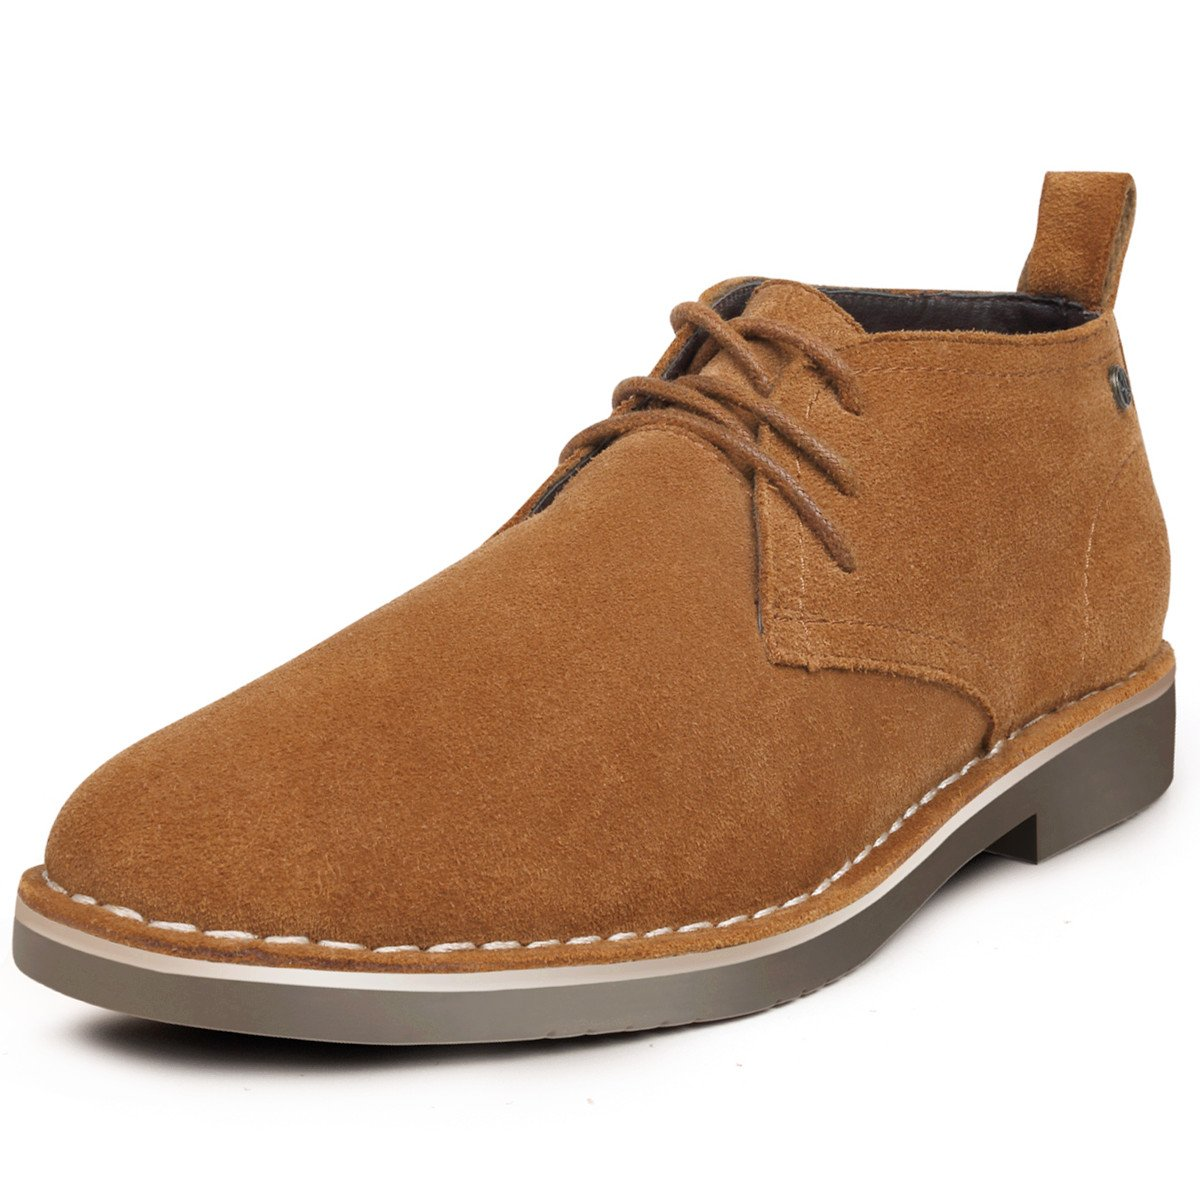 GM GOLAIMAN Genuine Suede Chukka Boots for Men Lace-up Desert Ankle Booties Stylish Leather Shoes Brown 10 D (M) US